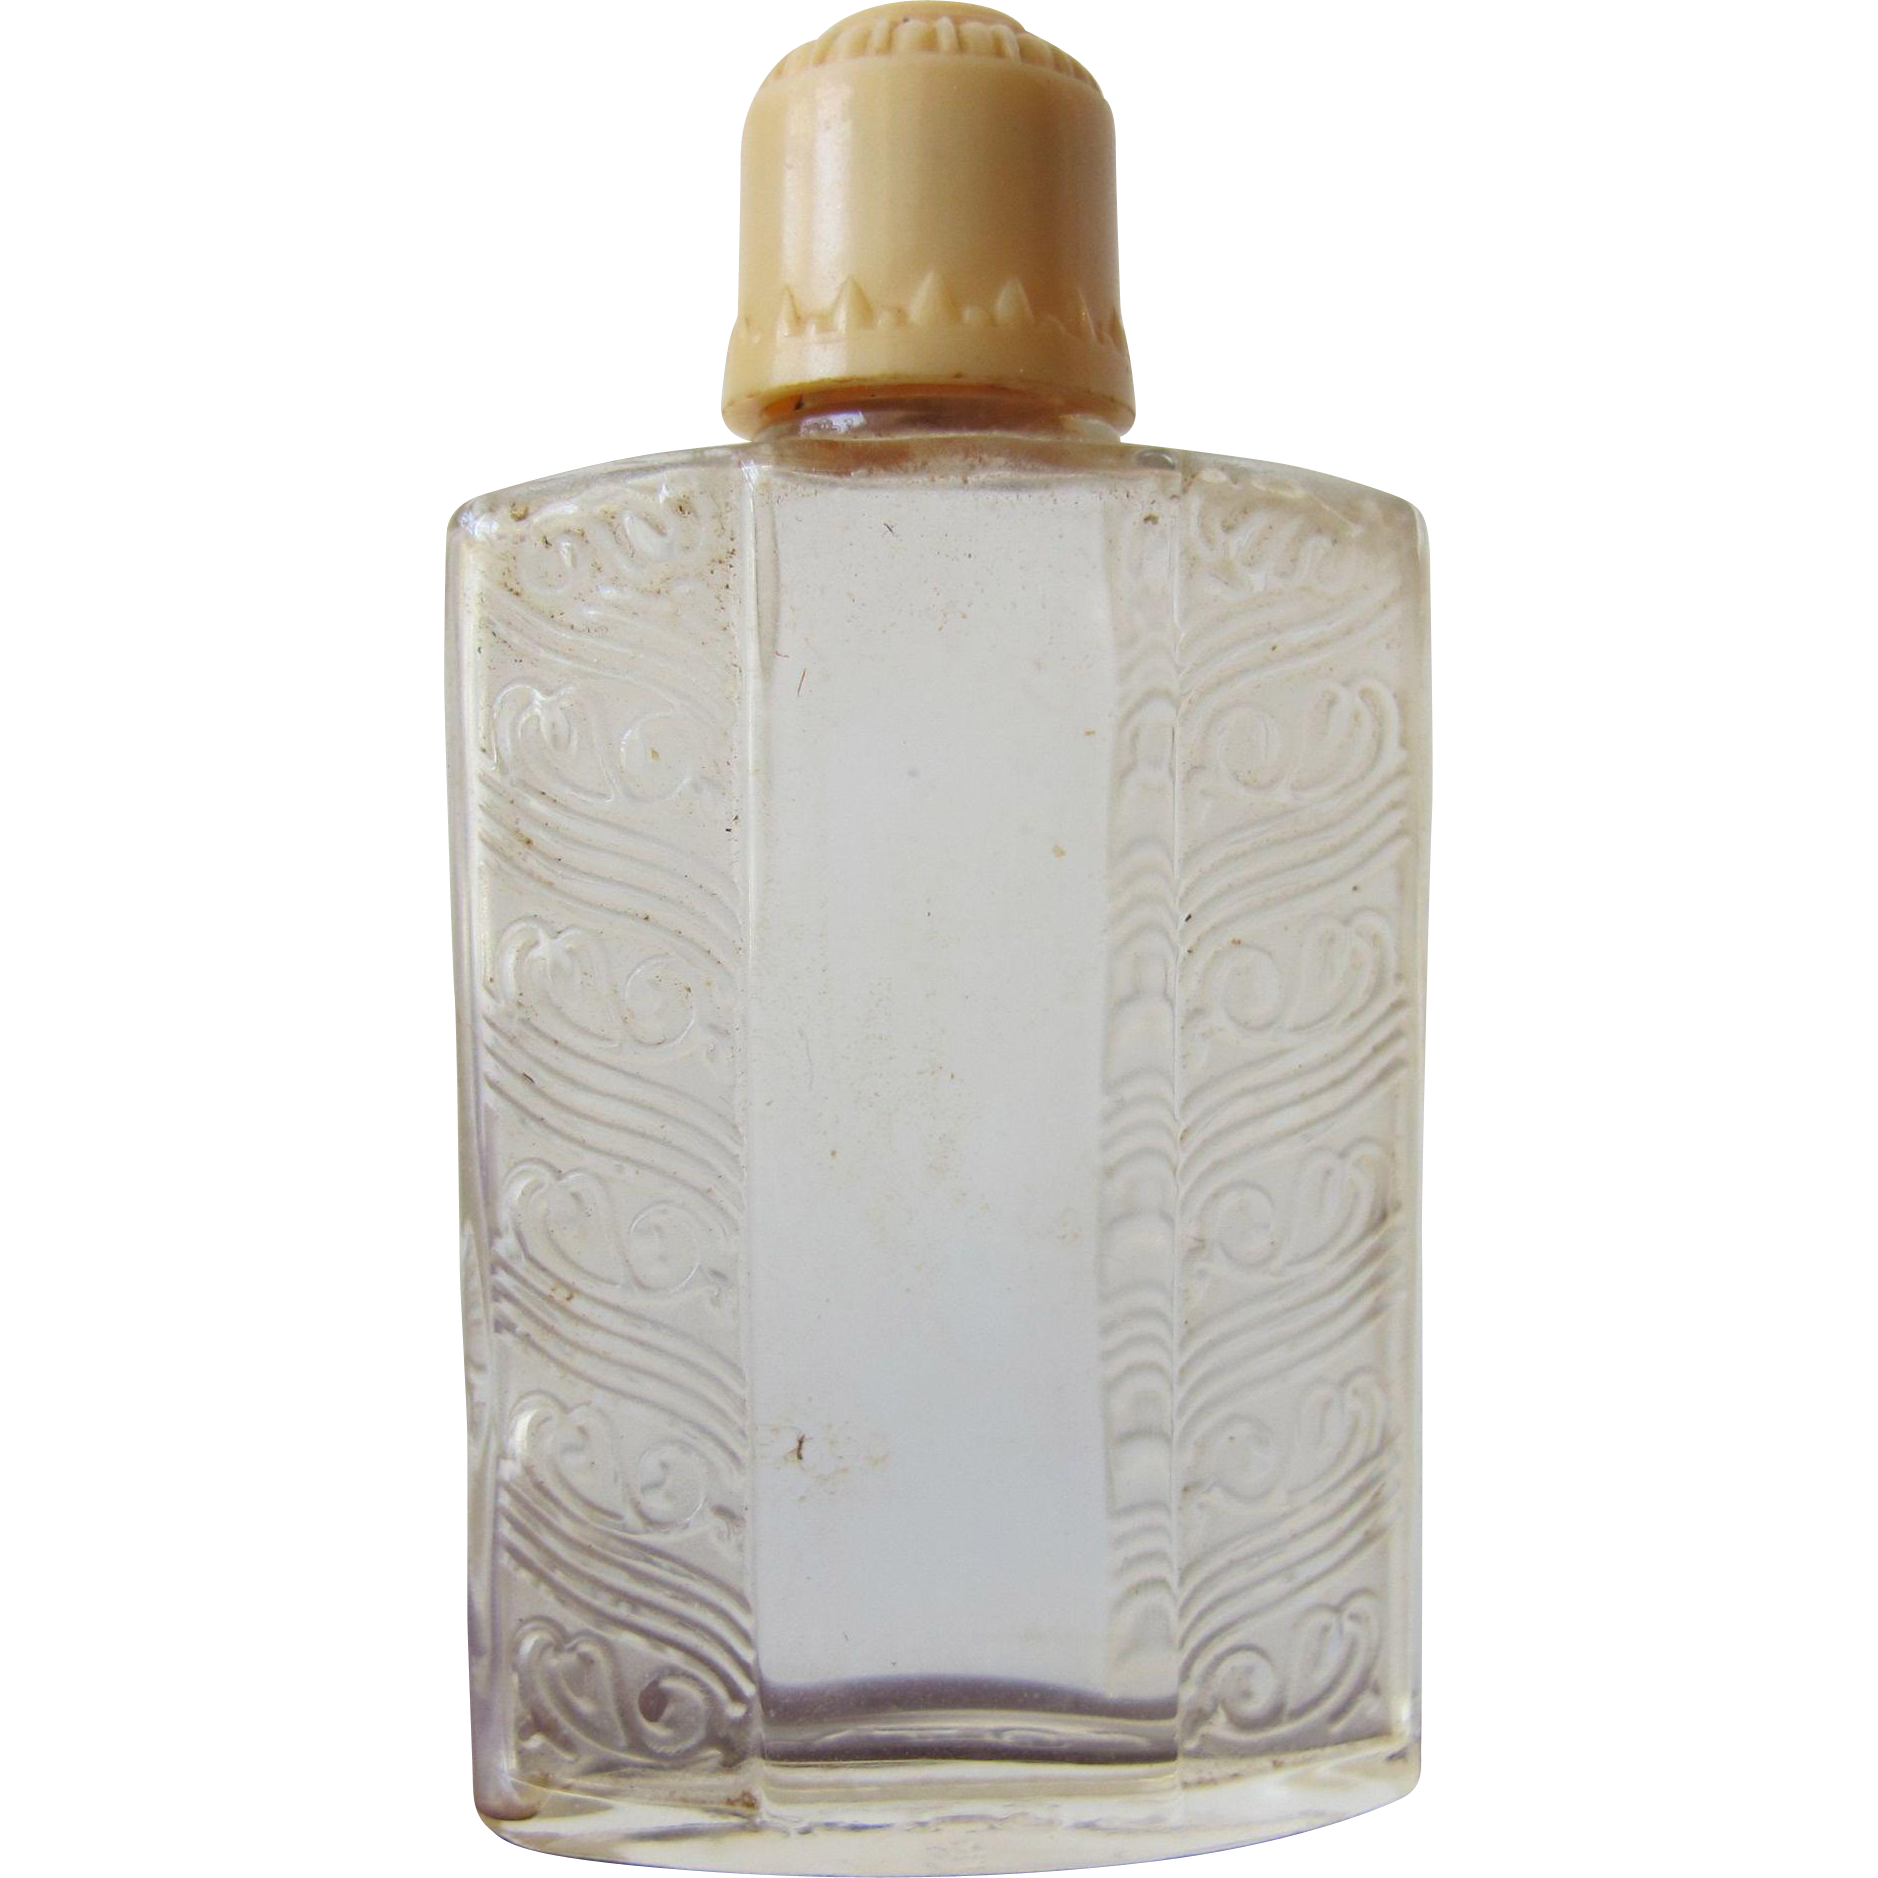 Vintage Art Deco Chypre De Coty Glass Perfume Bottle